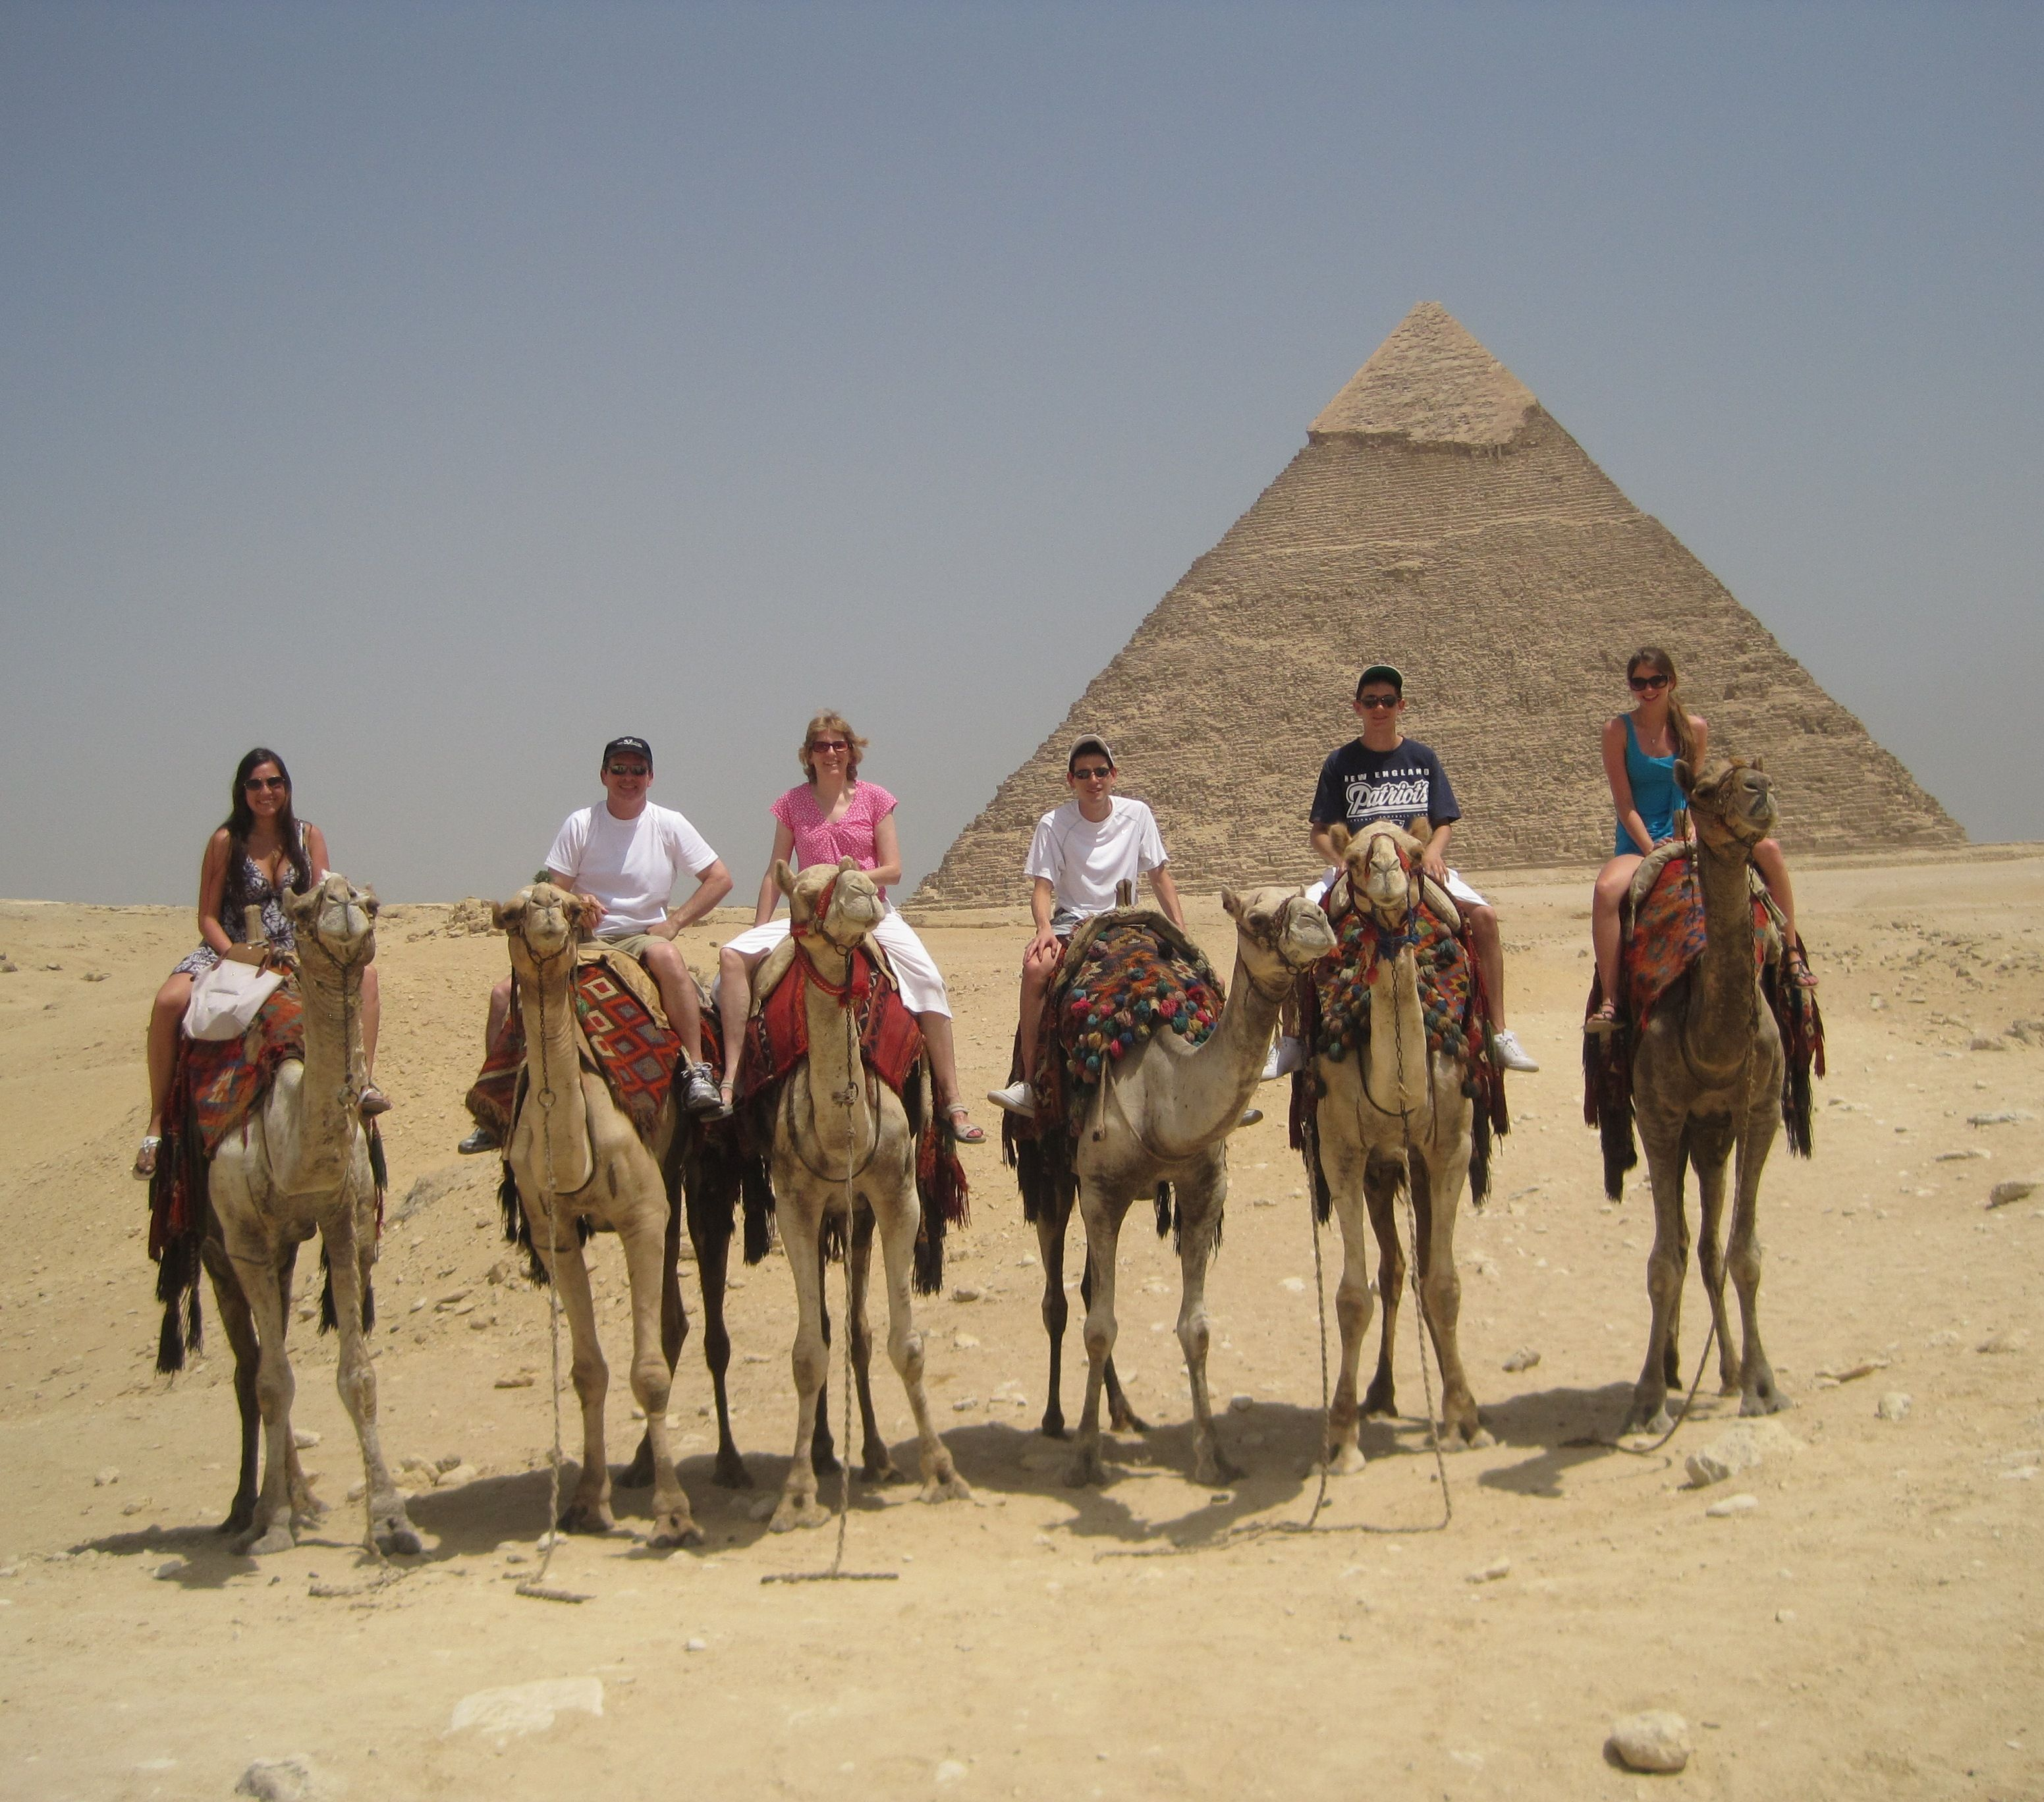 One of my favourite places was in Egypt seeing the pyramids and riding camels.